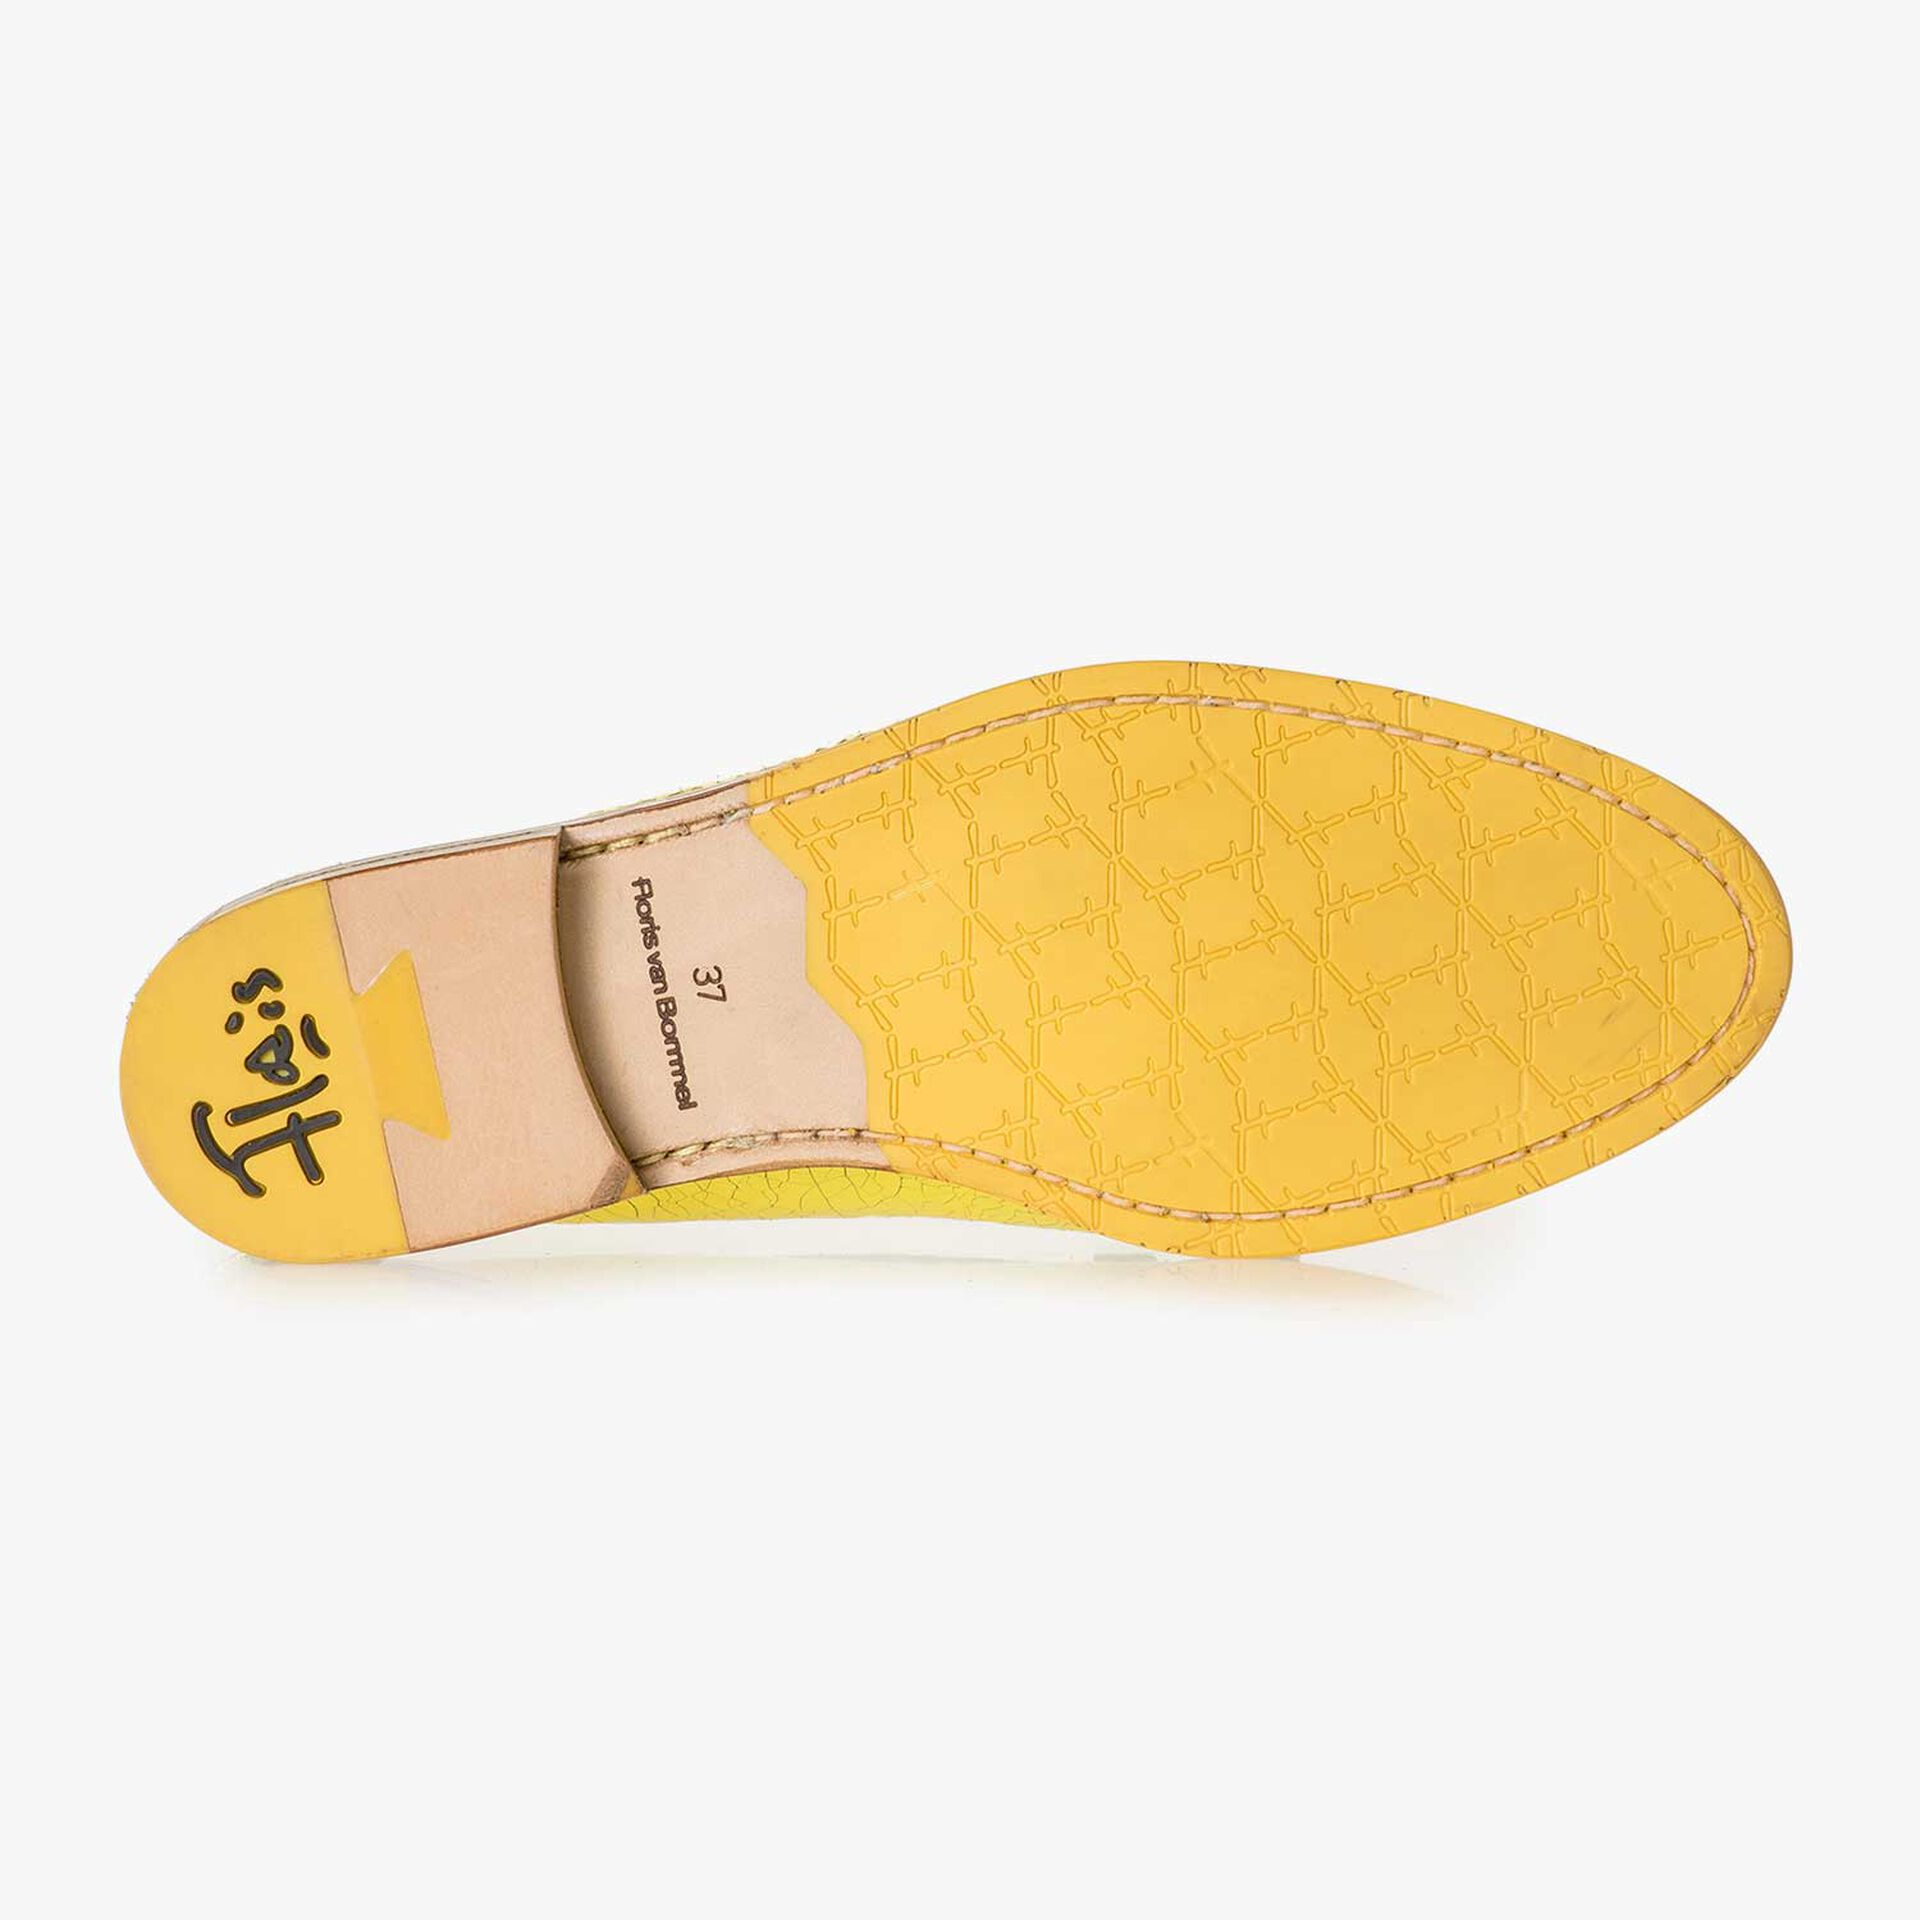 Yellow metallic leather loafer with craquelé effect